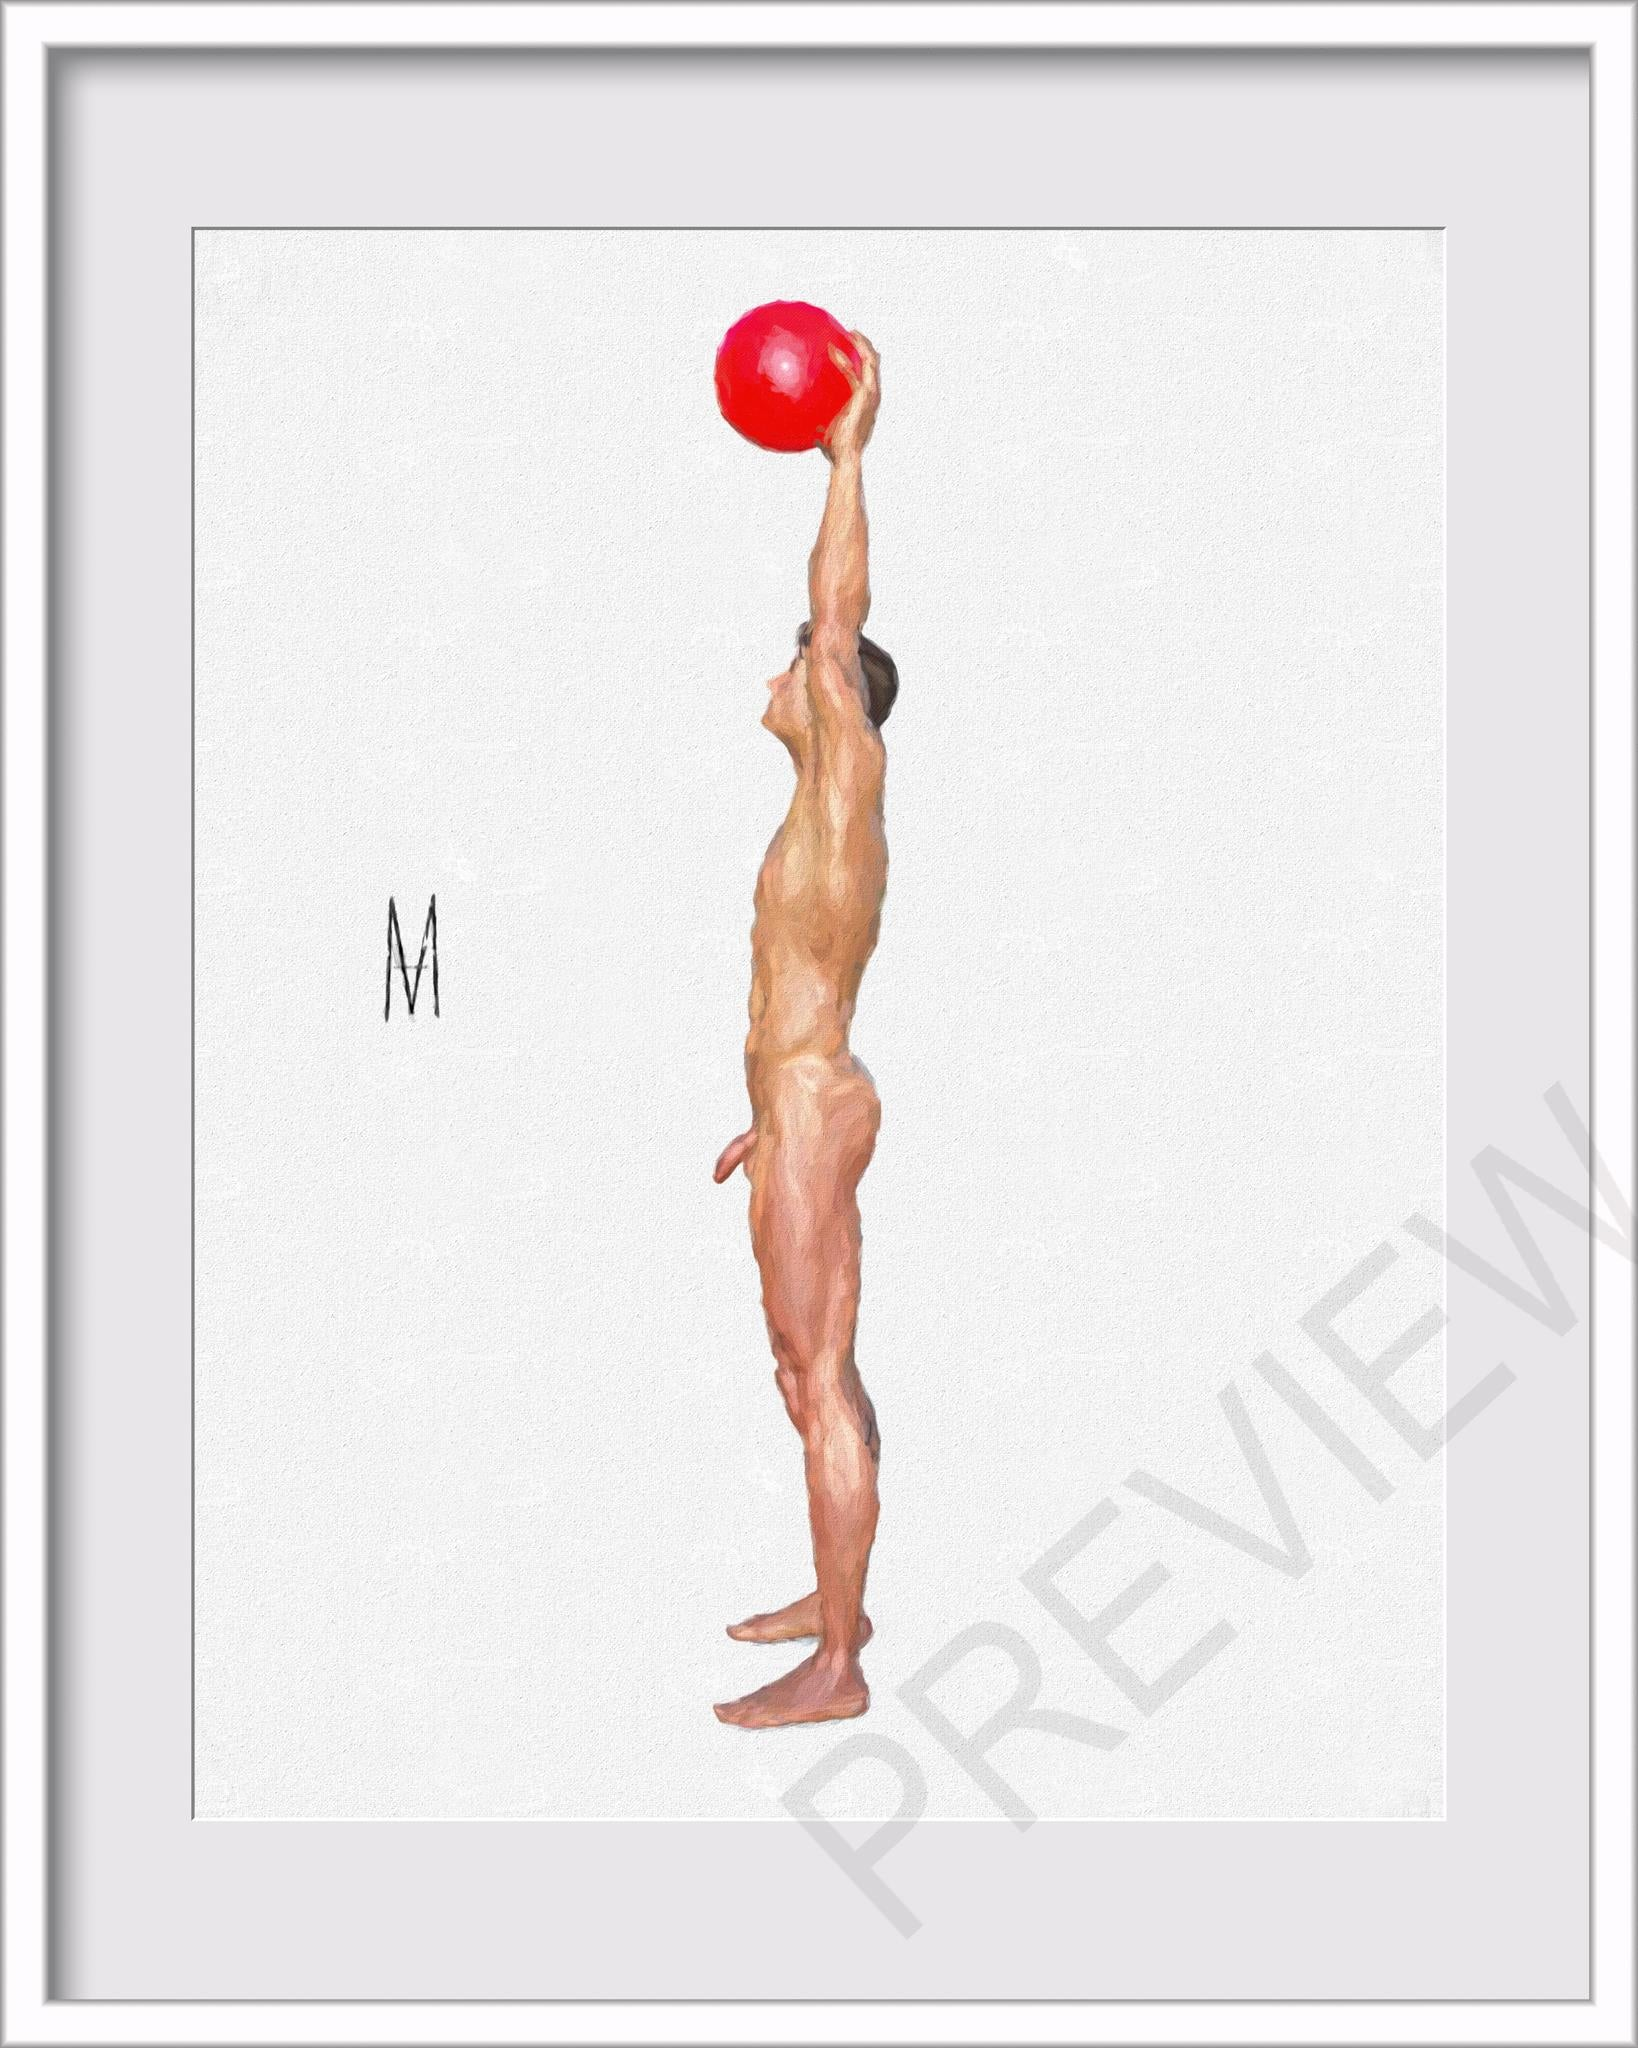 Nude Male Figure Pose 8x10 Canvas Painting Print